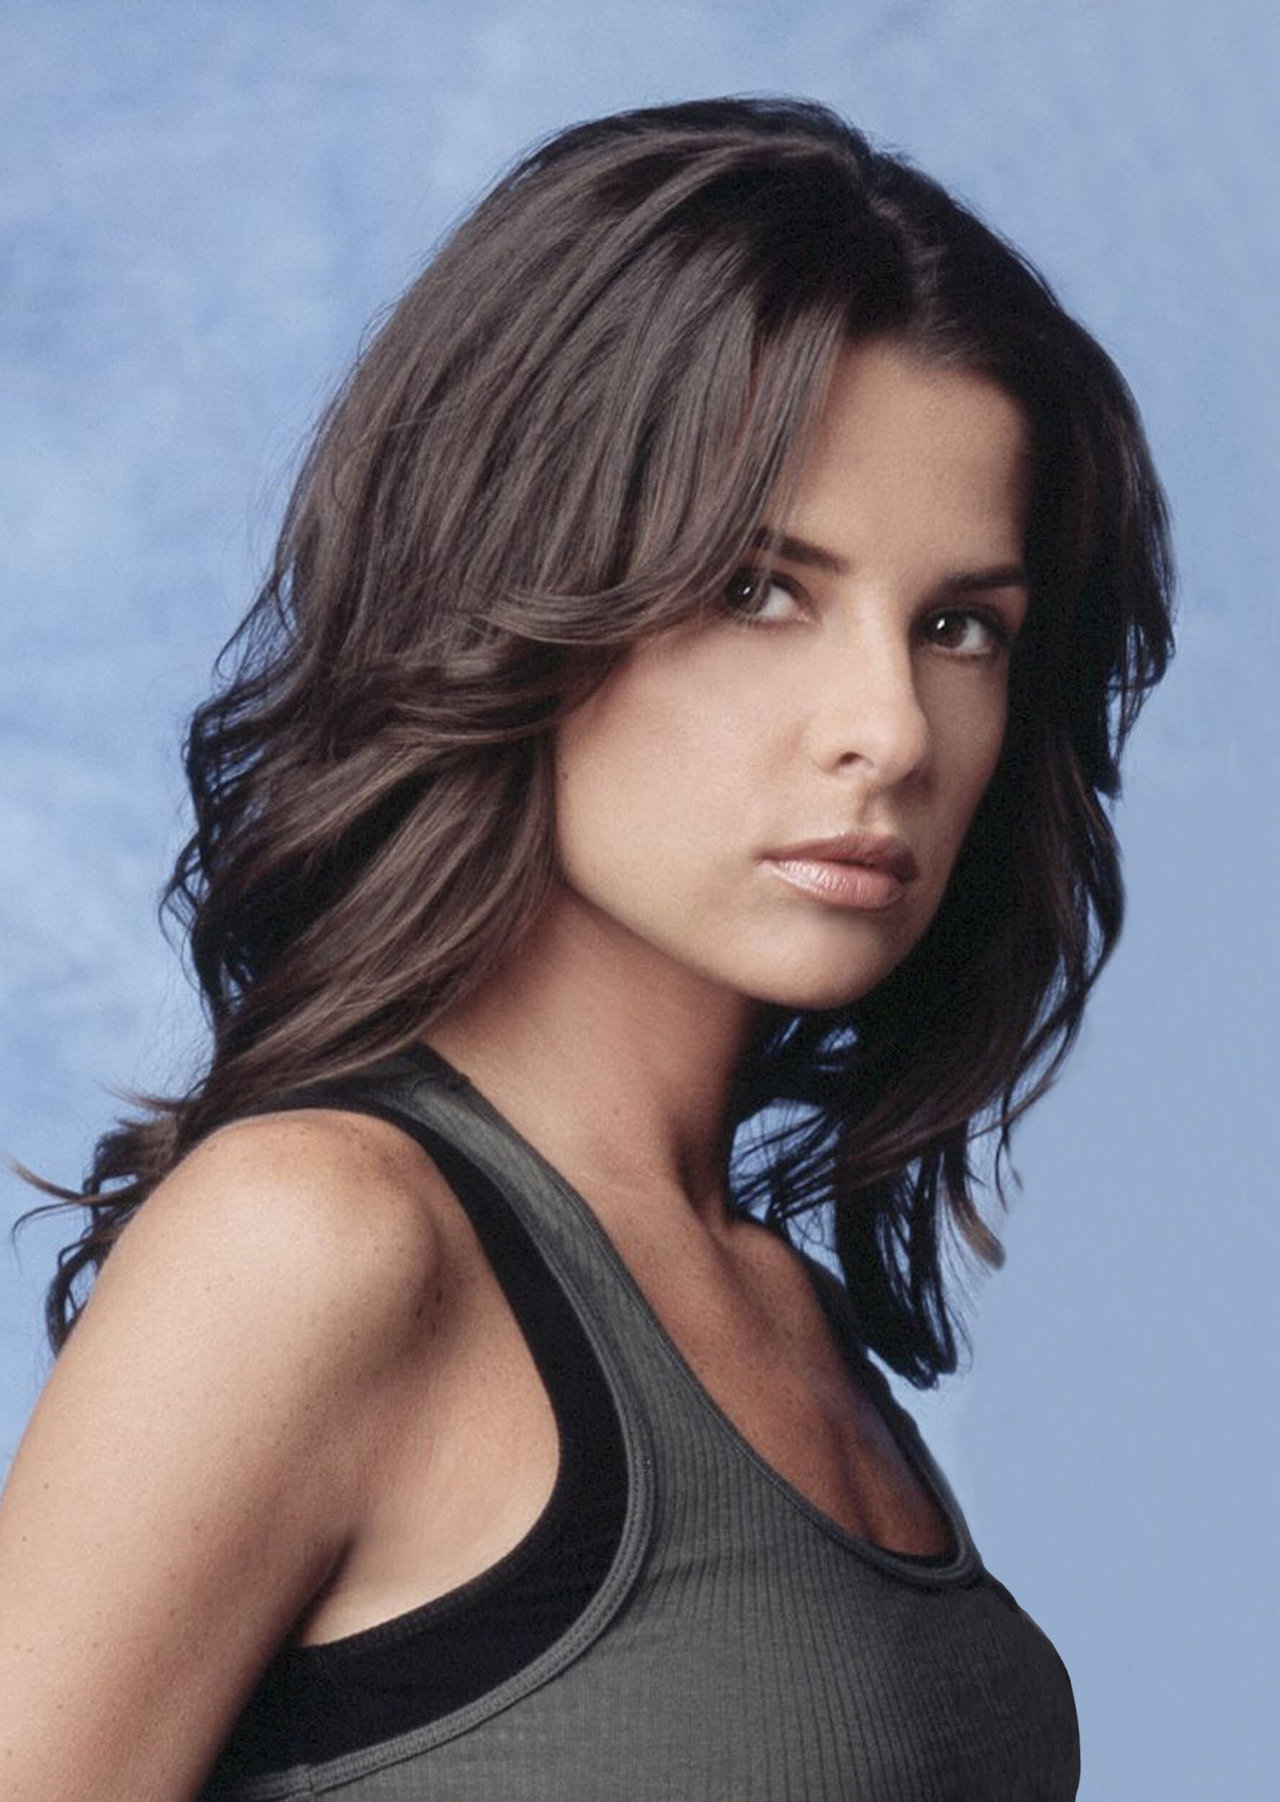 Young Kelly Monaco nudes (78 images), Instagram